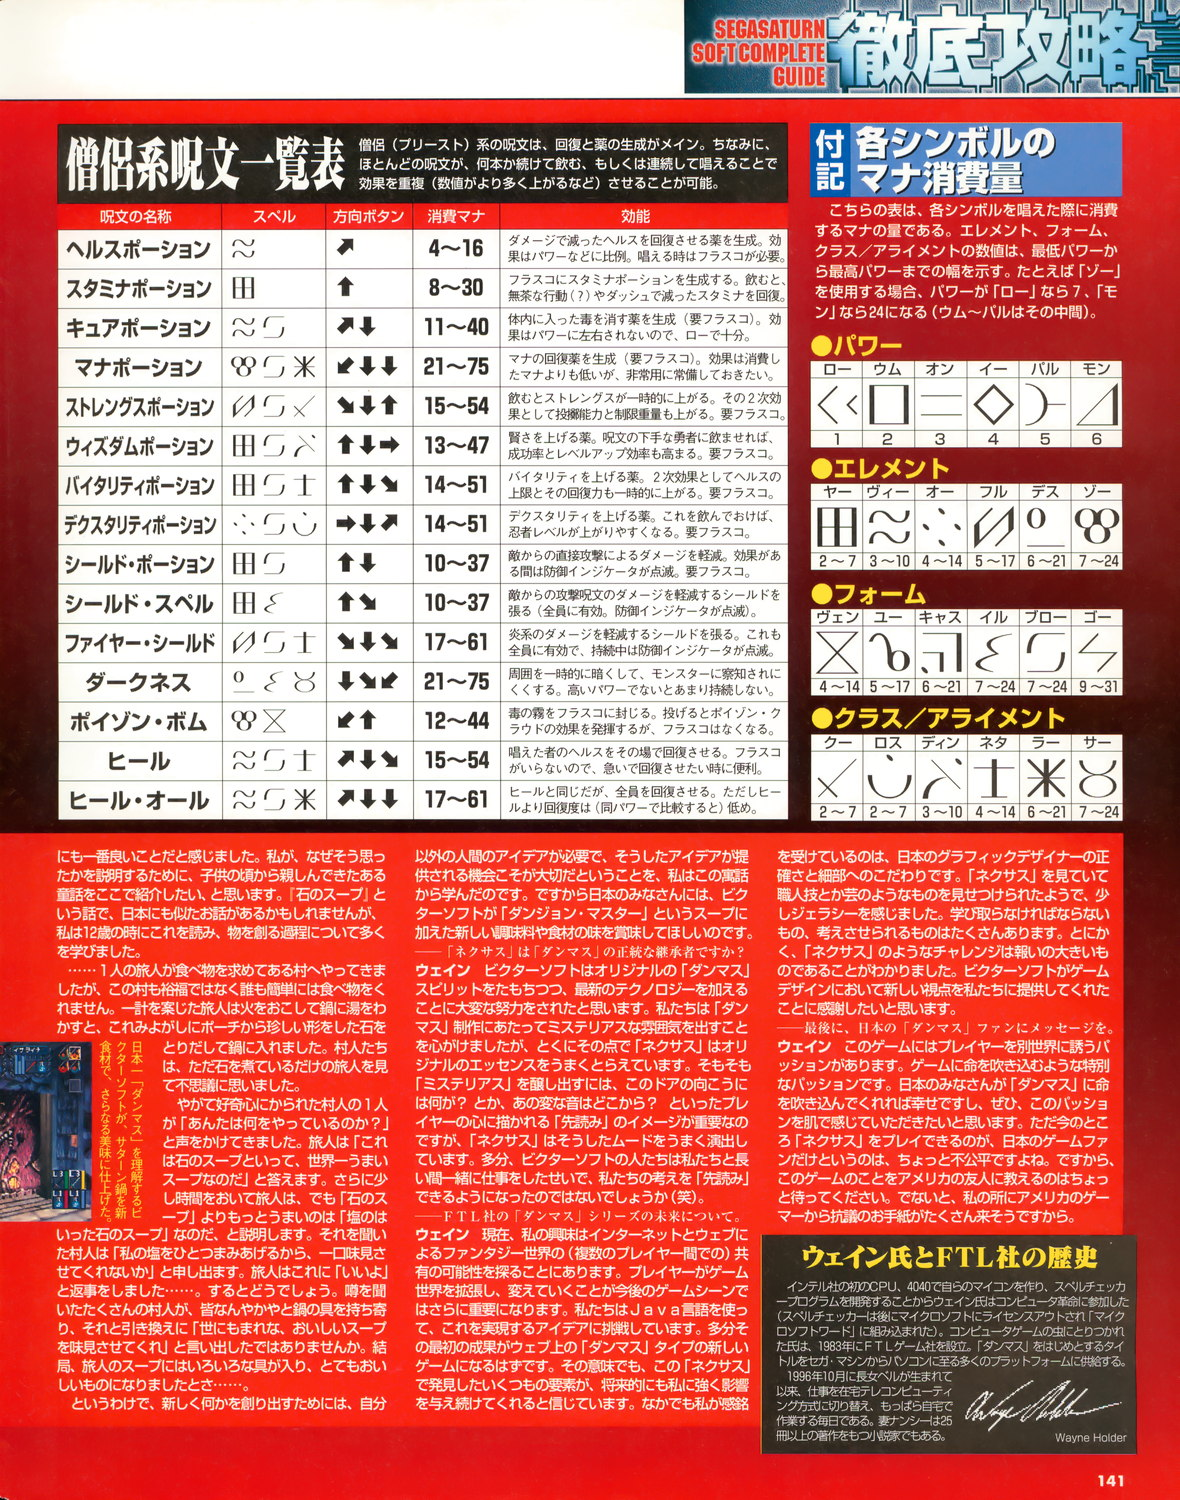 Dungeon Master Nexus Guide published in Japanese magazine 'Sega Saturn Magazine', Vol 12 24 April 1998, Page 141